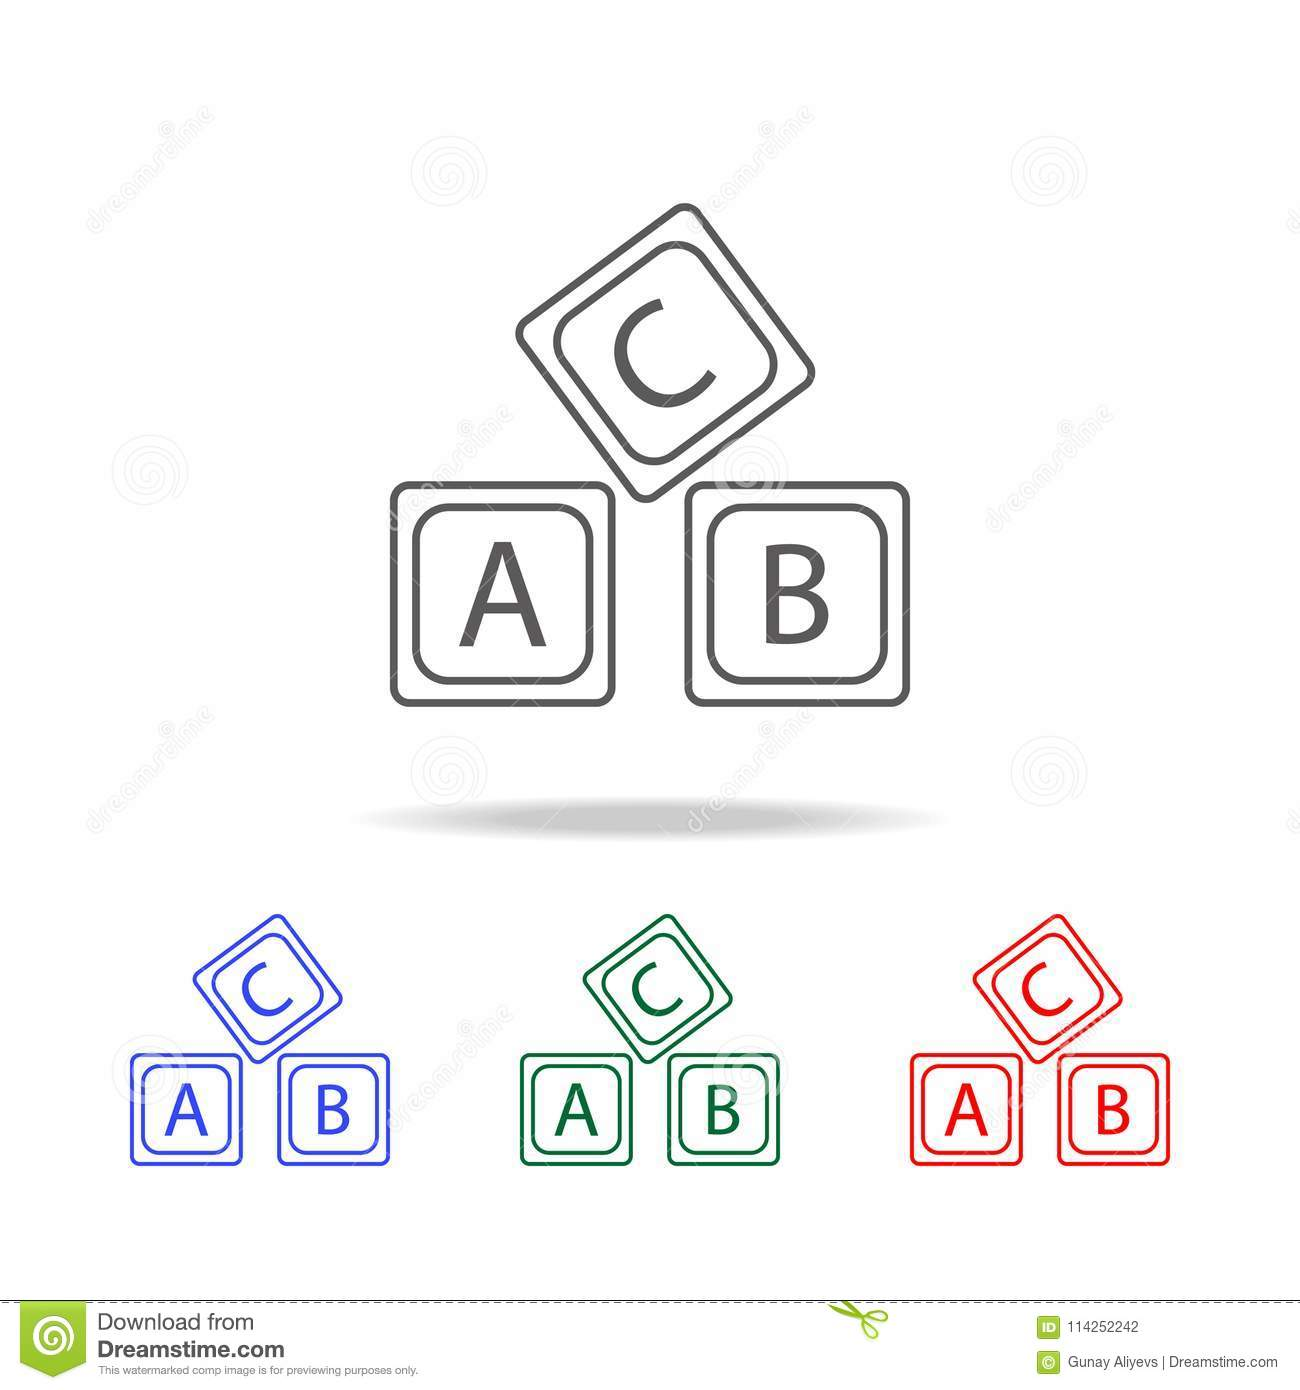 letter A B C logo alphabet icon. Elements of education multi colored icons. Premium quality graphic design icon. Simple icon for w